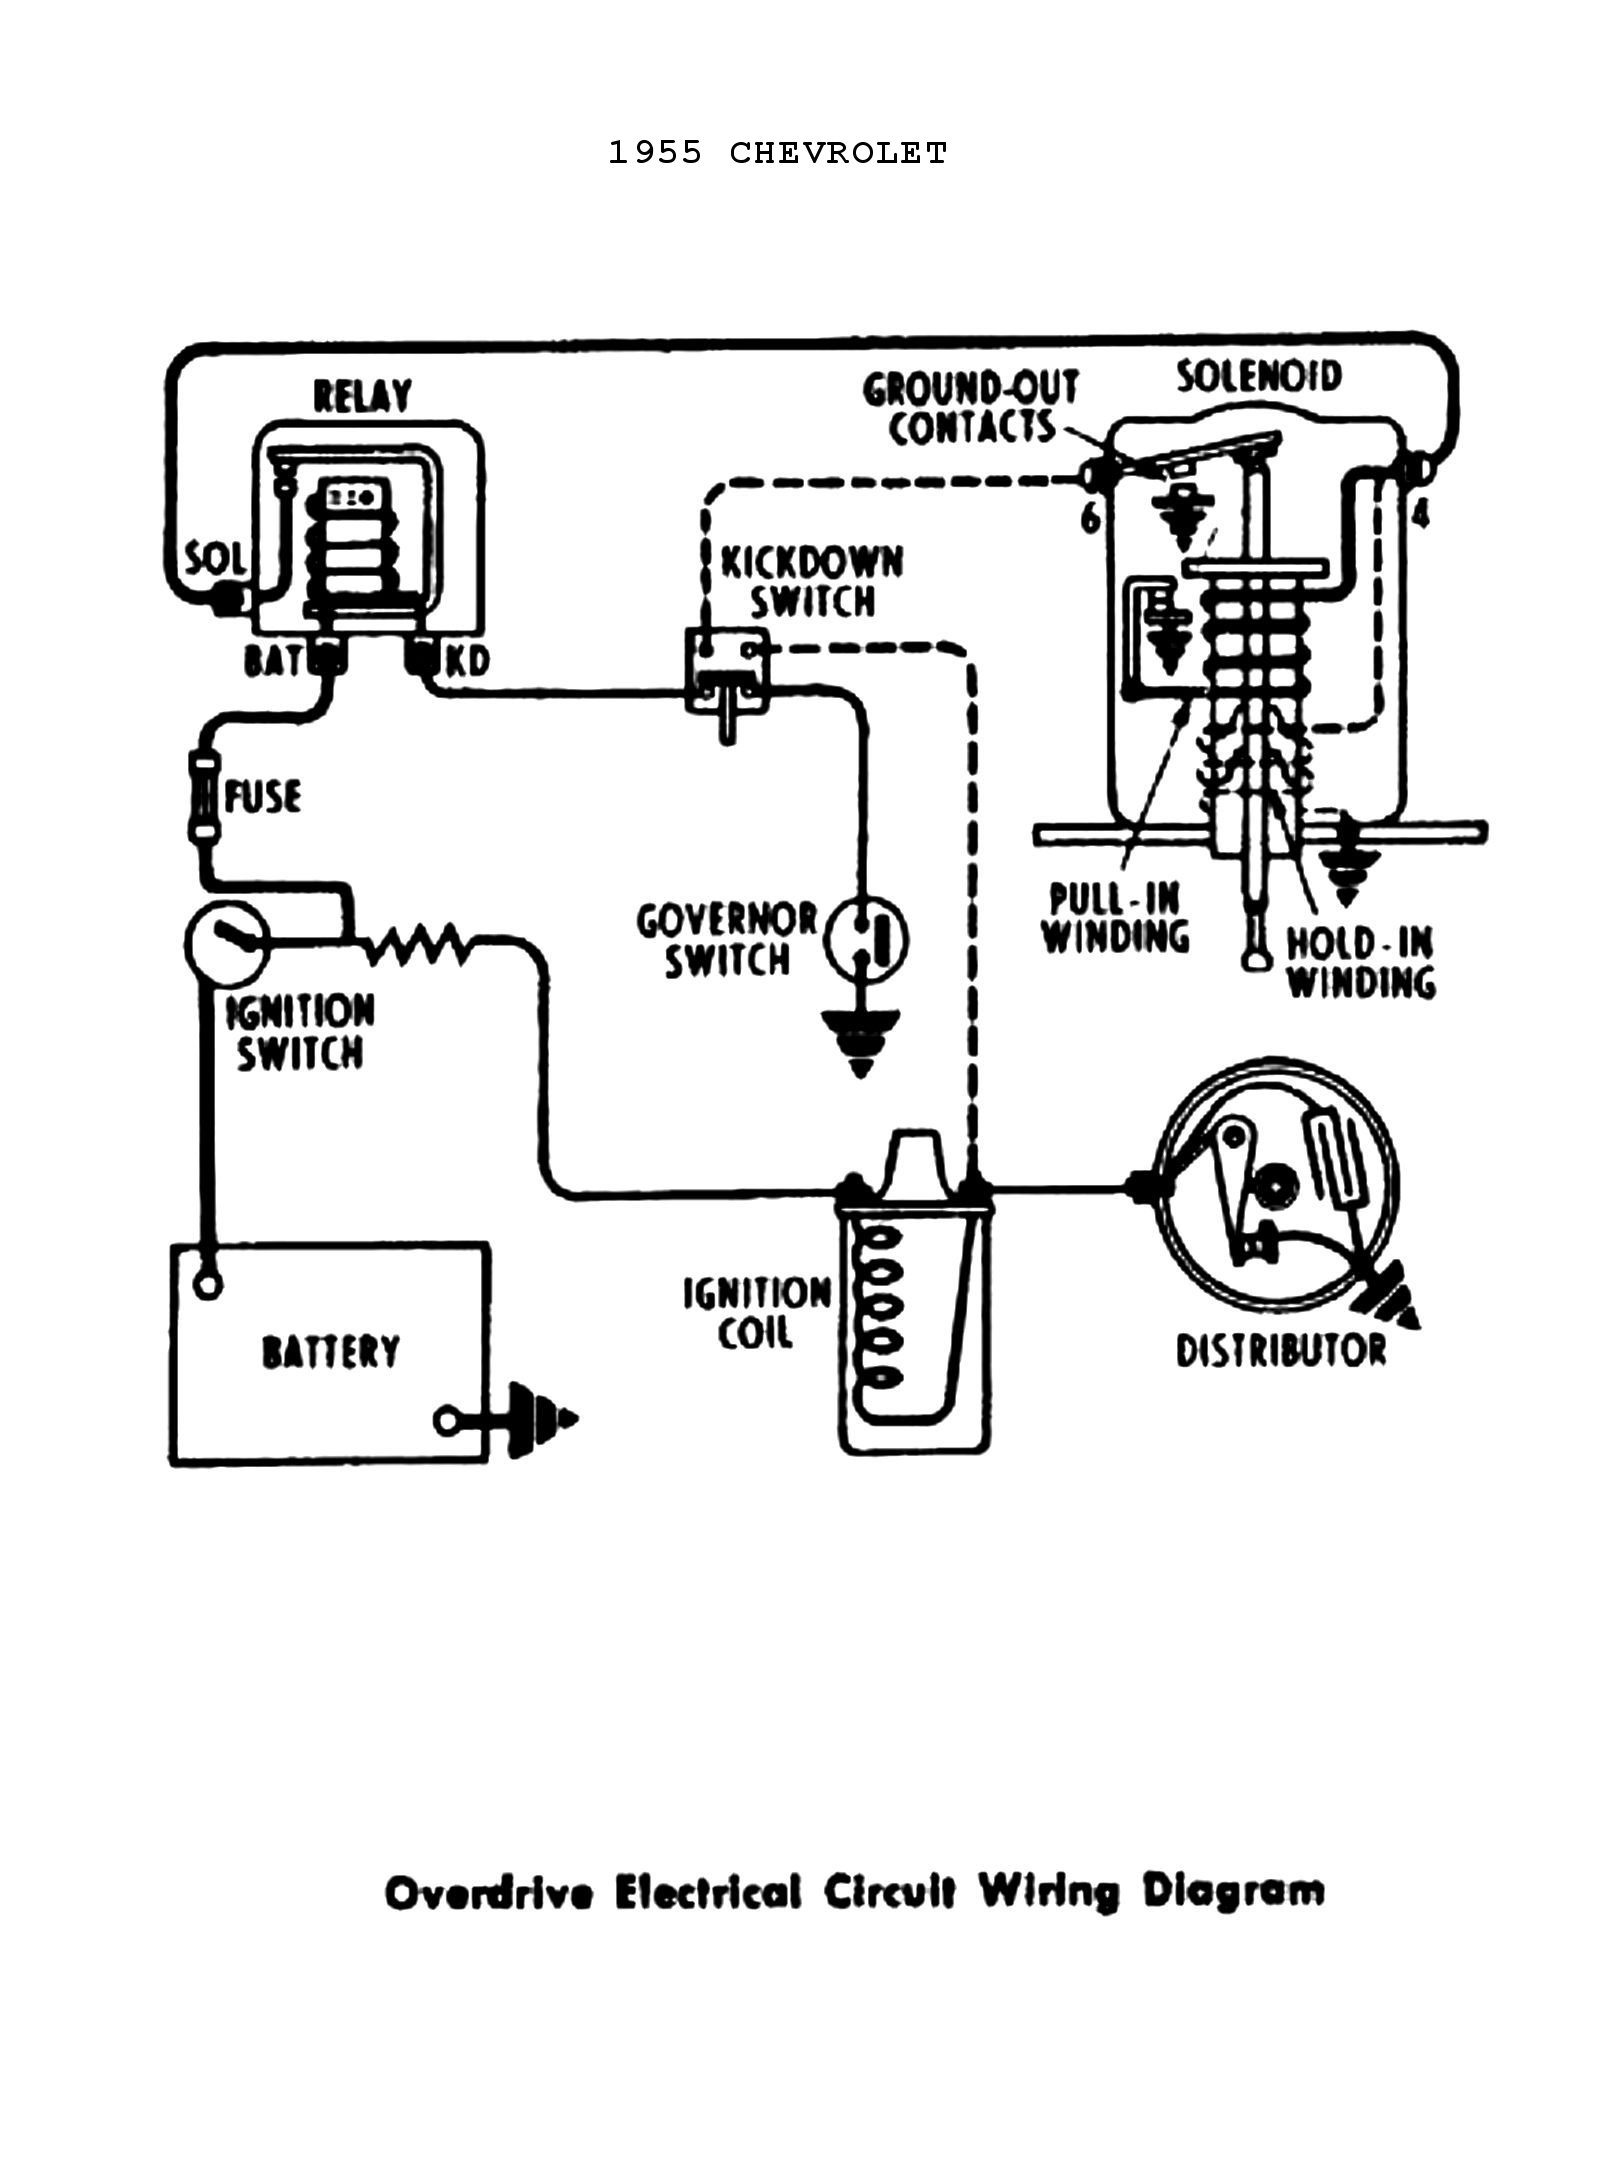 55odtrans1 chevy ignition wiring diagram ford ignition wiring diagram Chevy Truck Wiring Diagram at bayanpartner.co